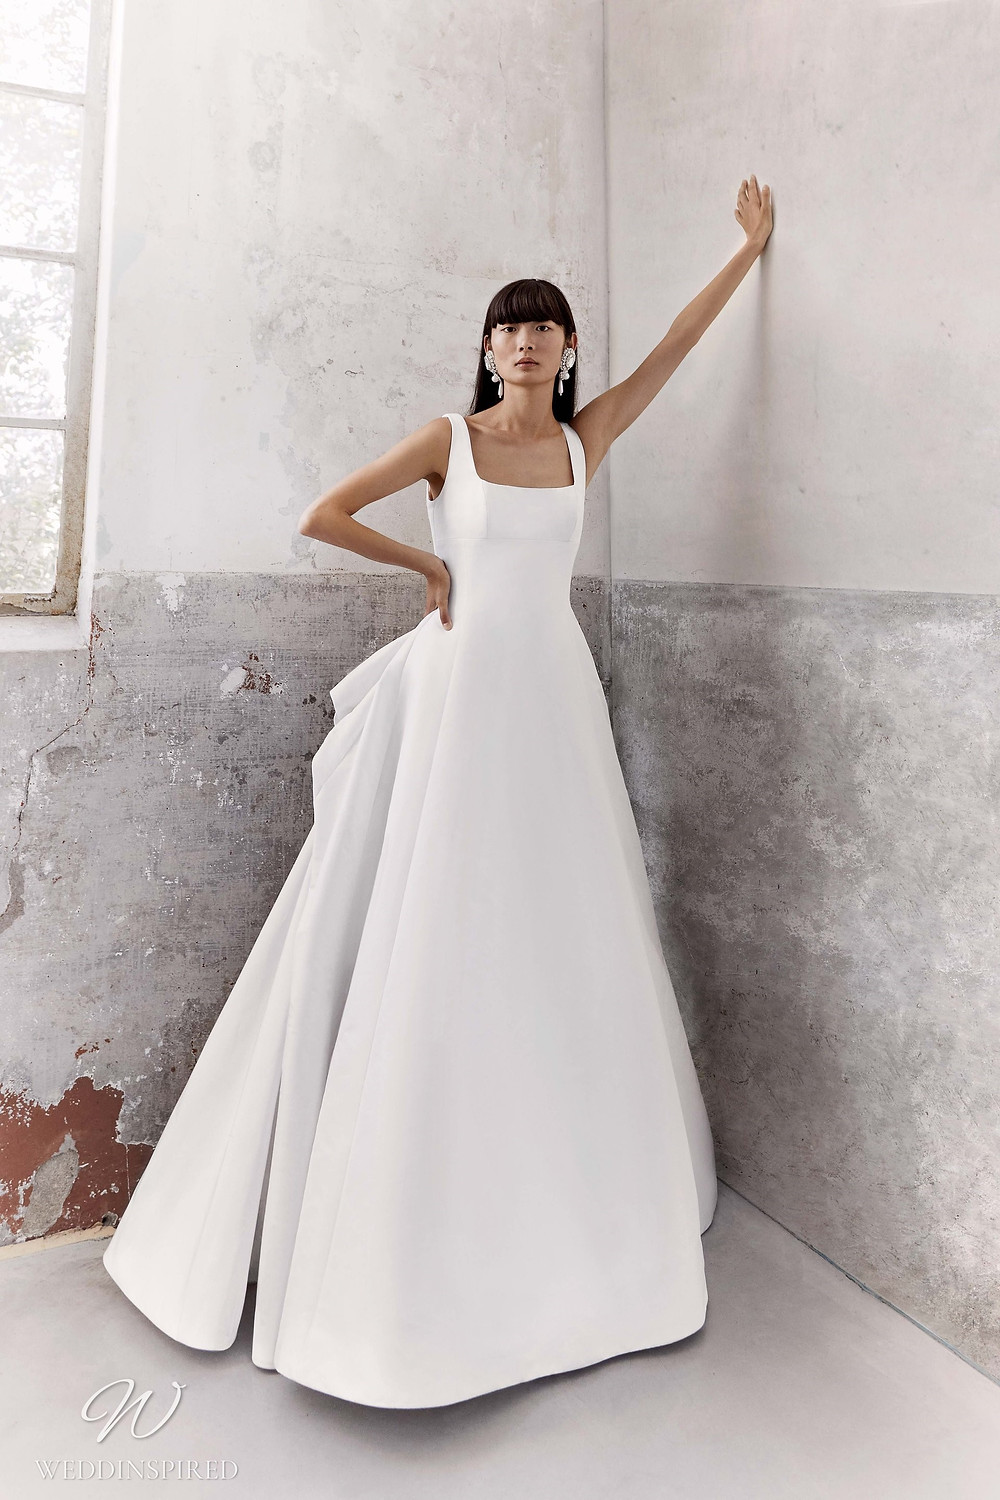 A Viktor & Rolf Fall/Winter 2021 simple ball gown wedding dress with straps and a square neckline